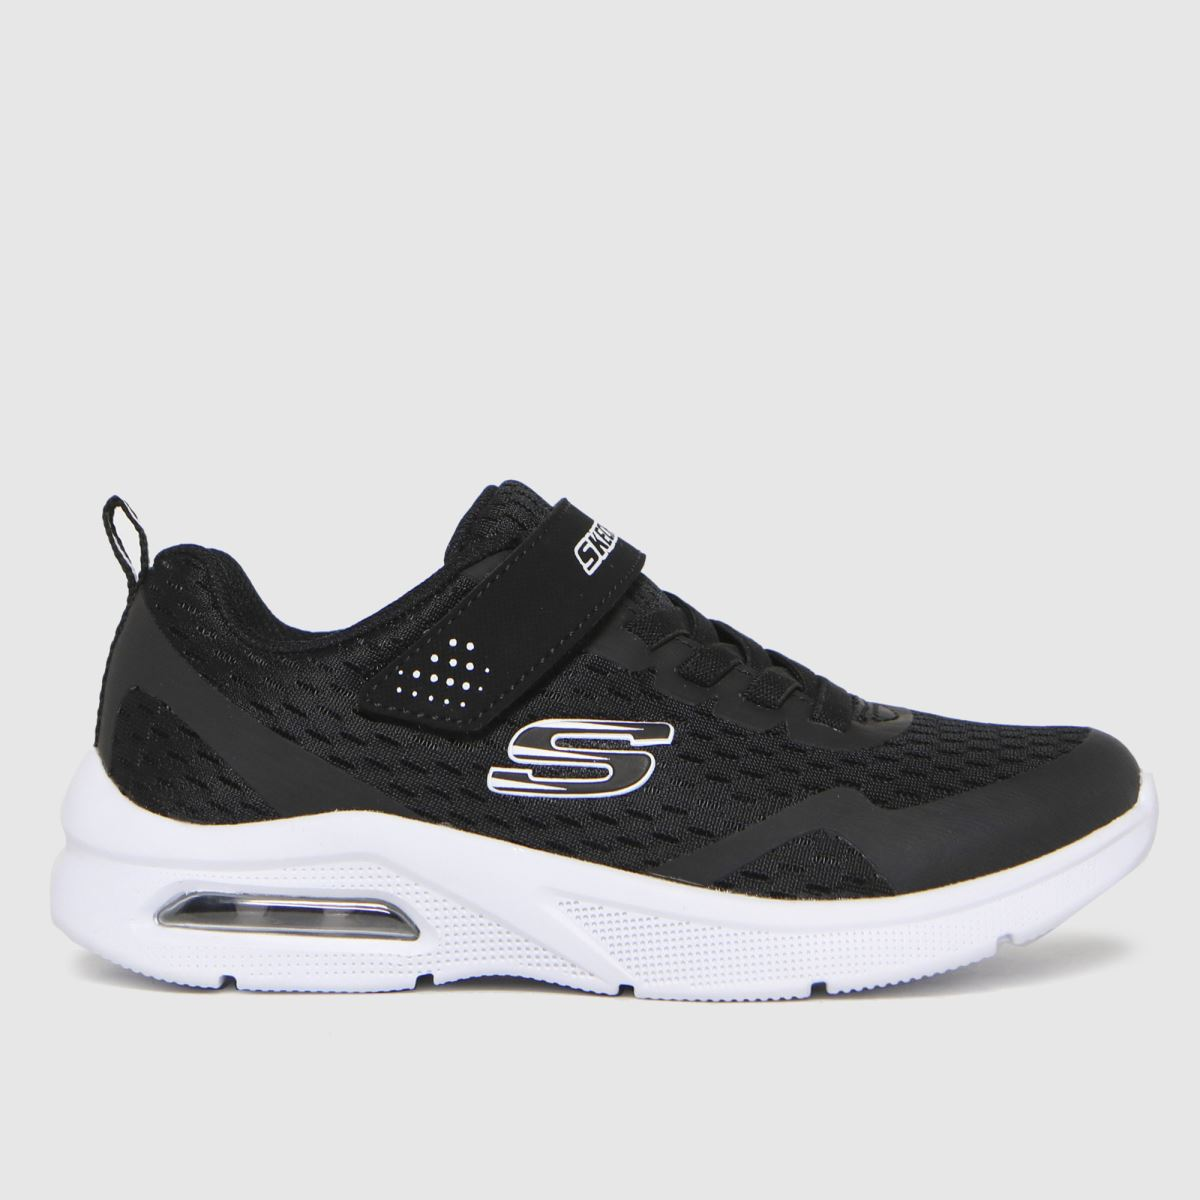 SKECHERS Black & White Microspec Max Trainers Youth